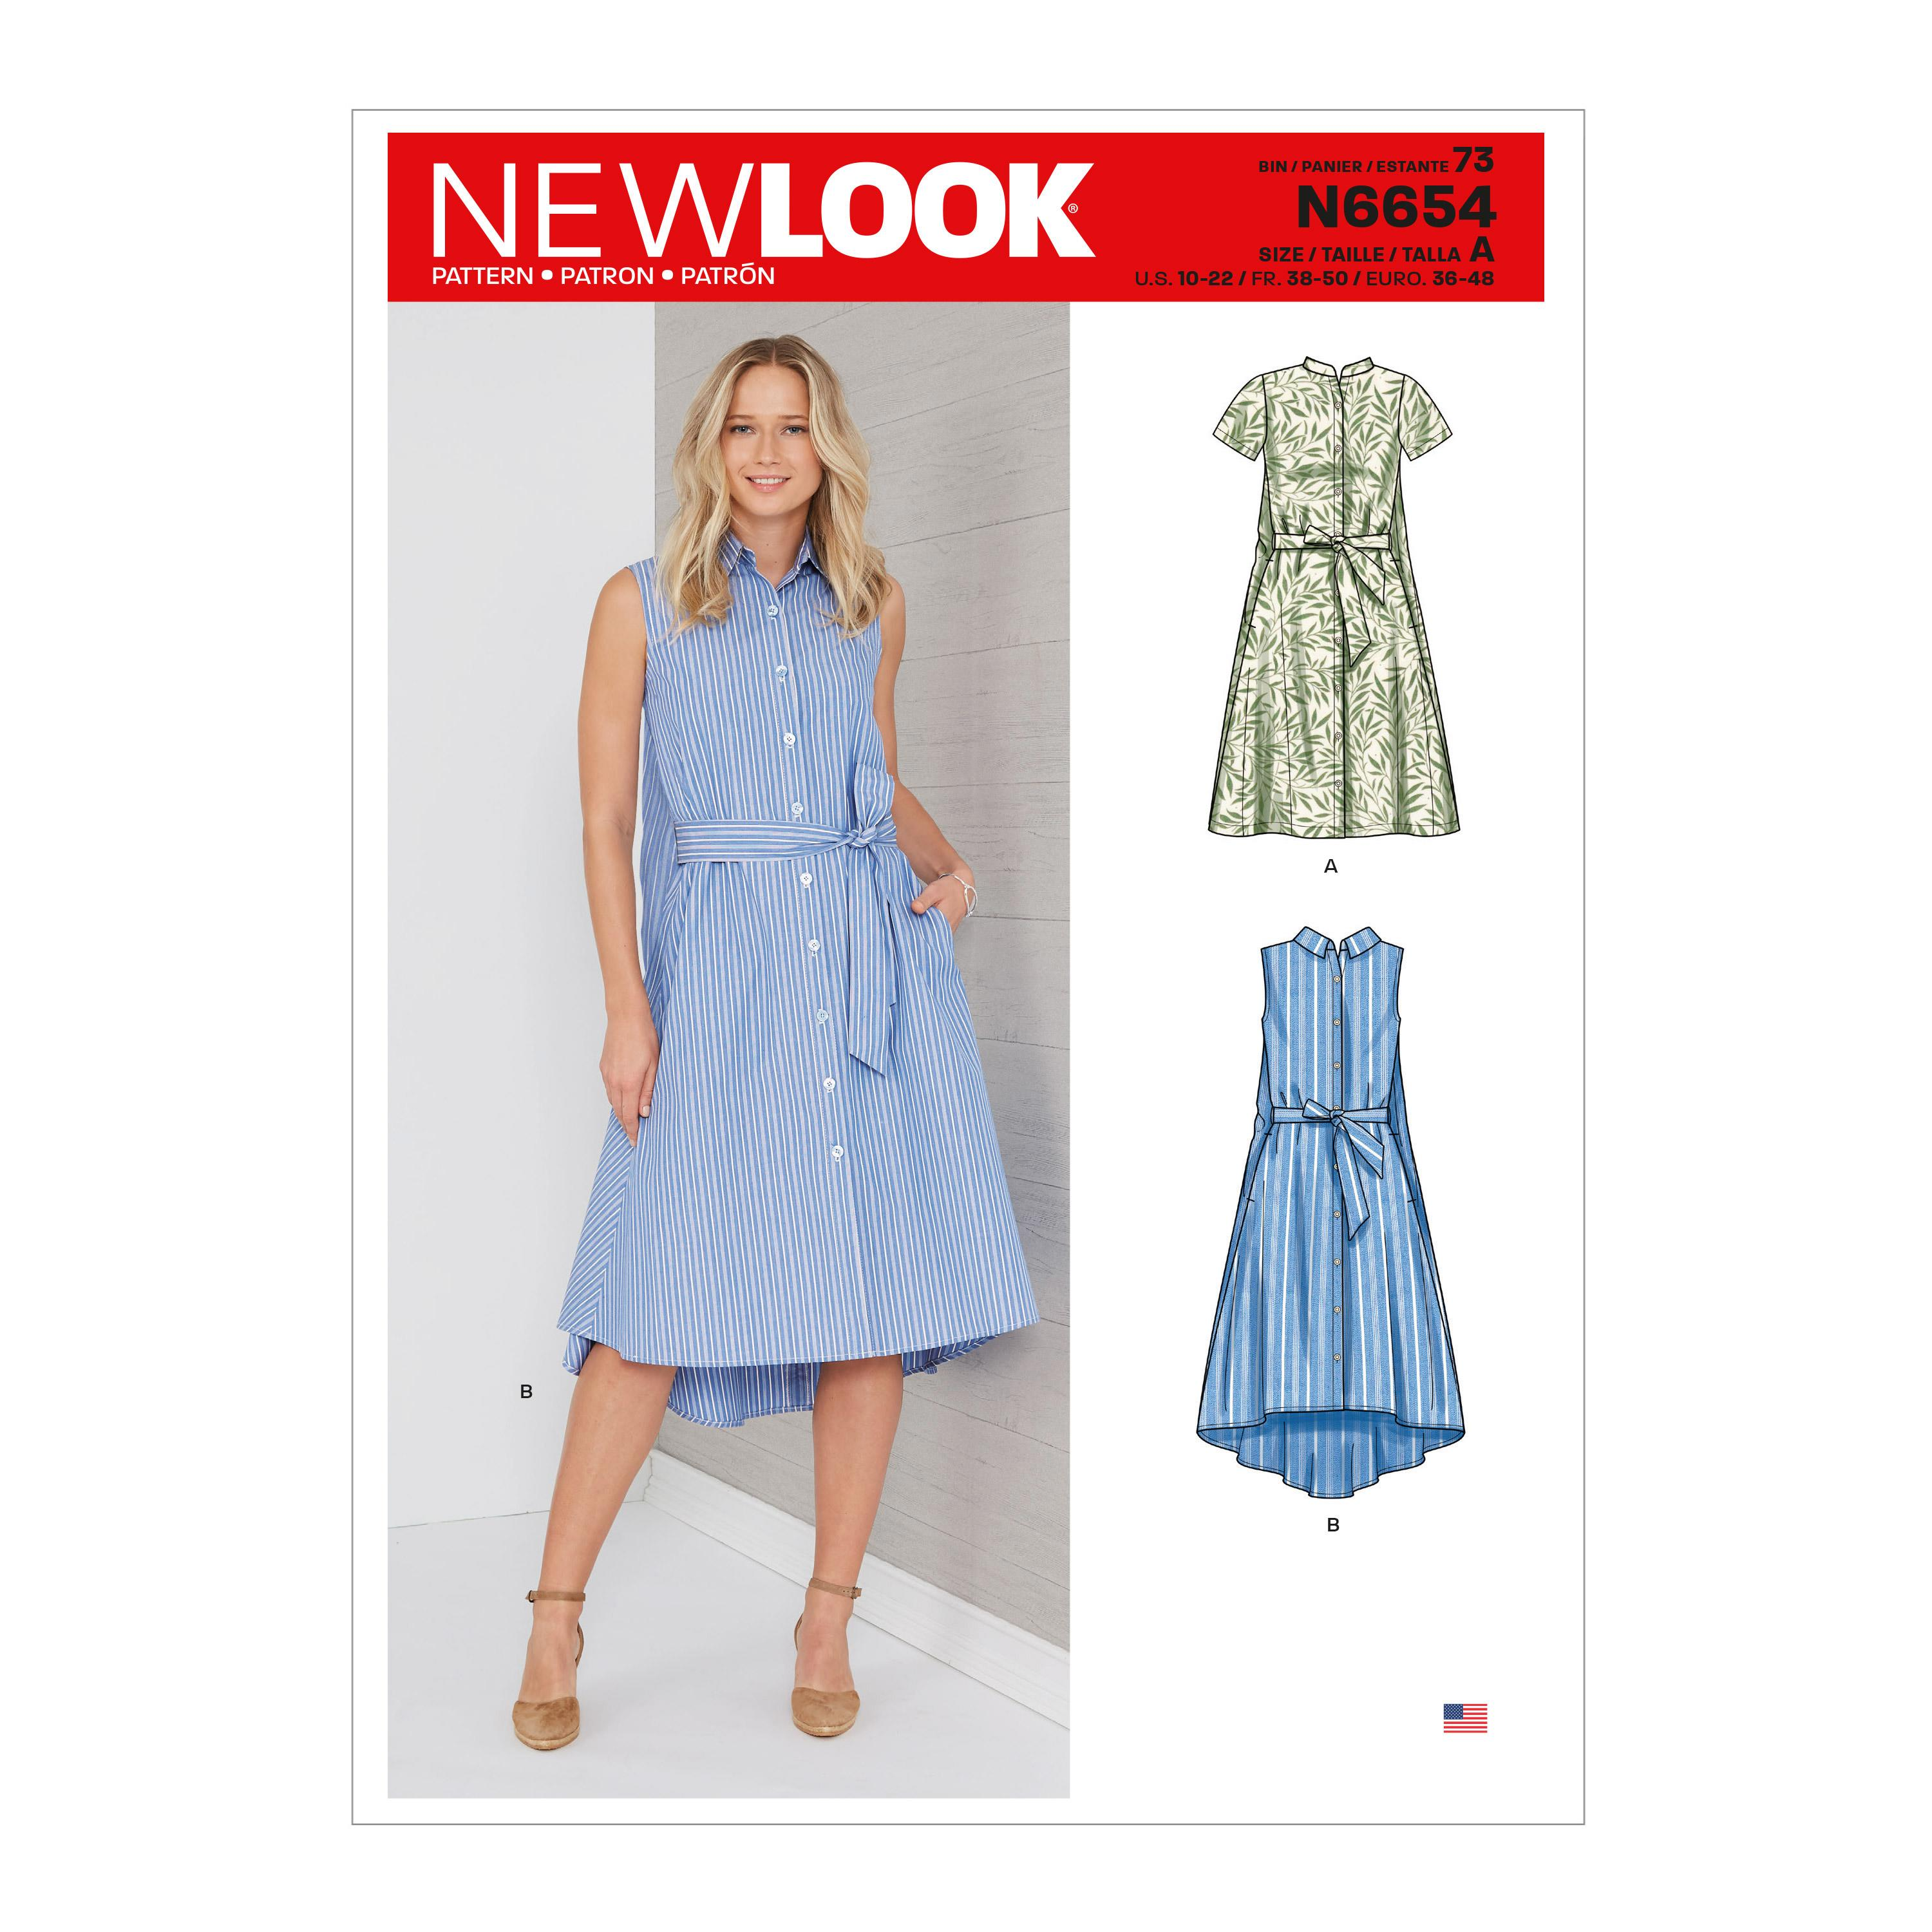 New Look Sewing Pattern N6654 Misses' Shirt Dress With Flared Back